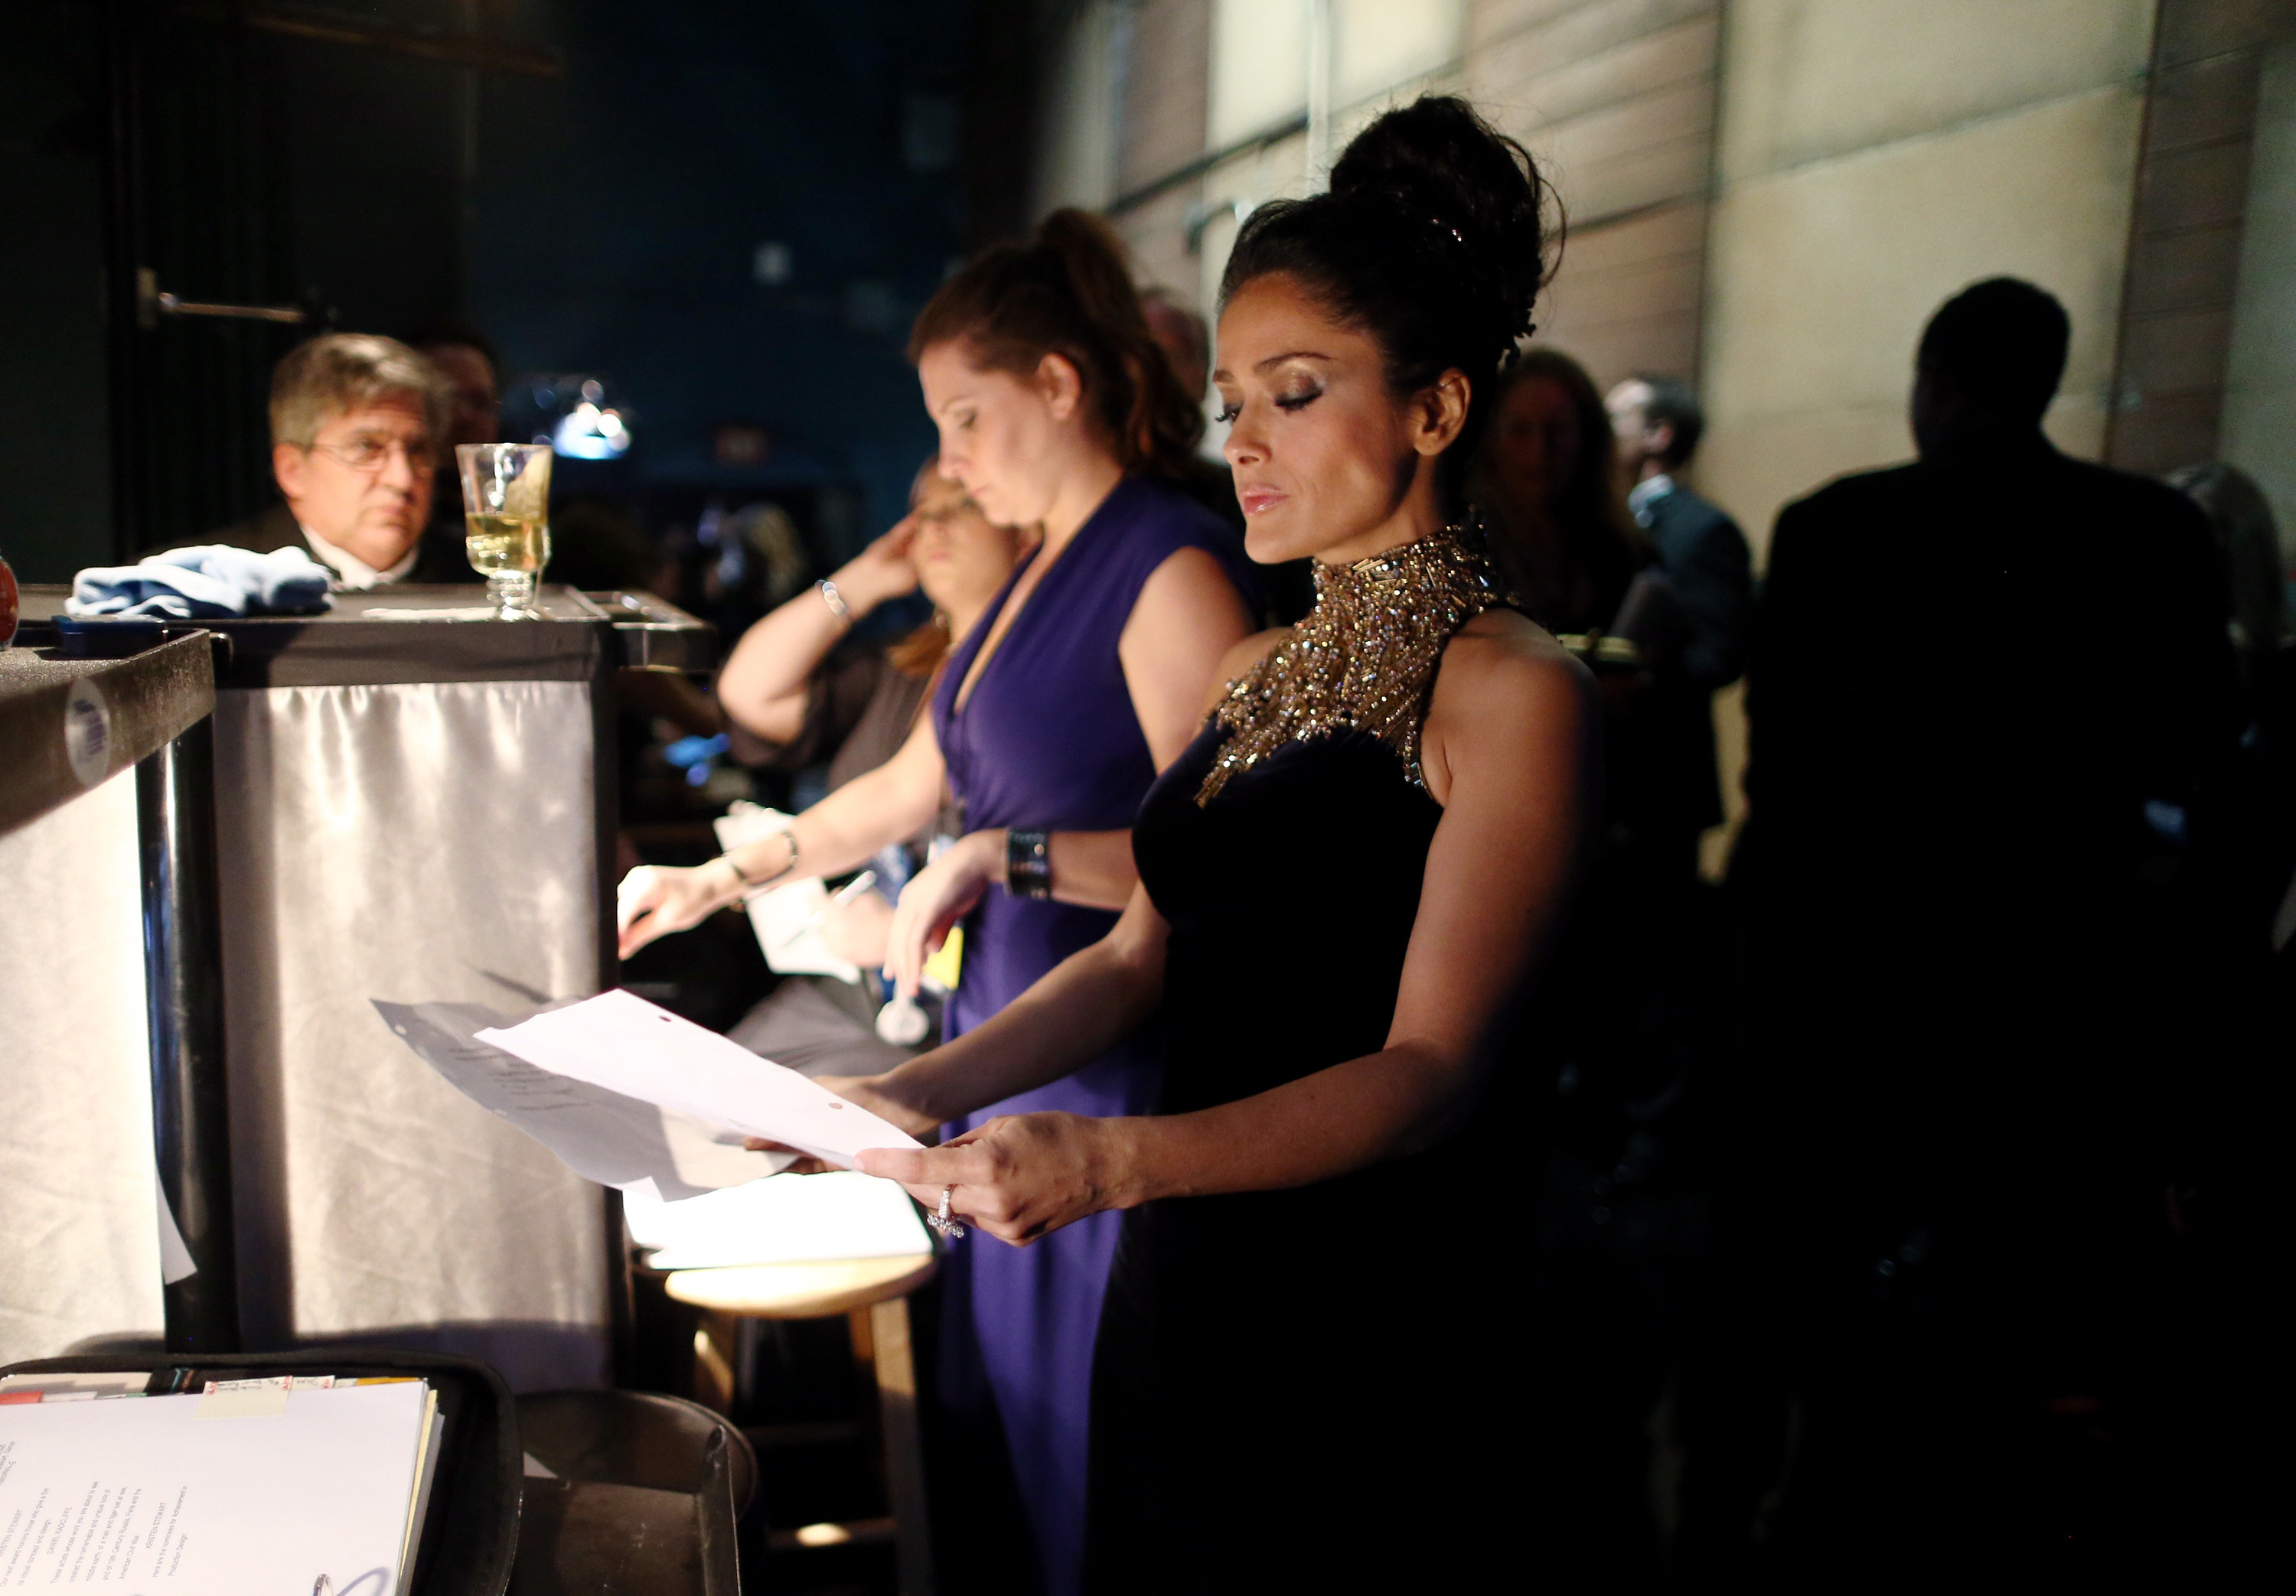 Salma Hayek backstage at the 2013 Oscars.